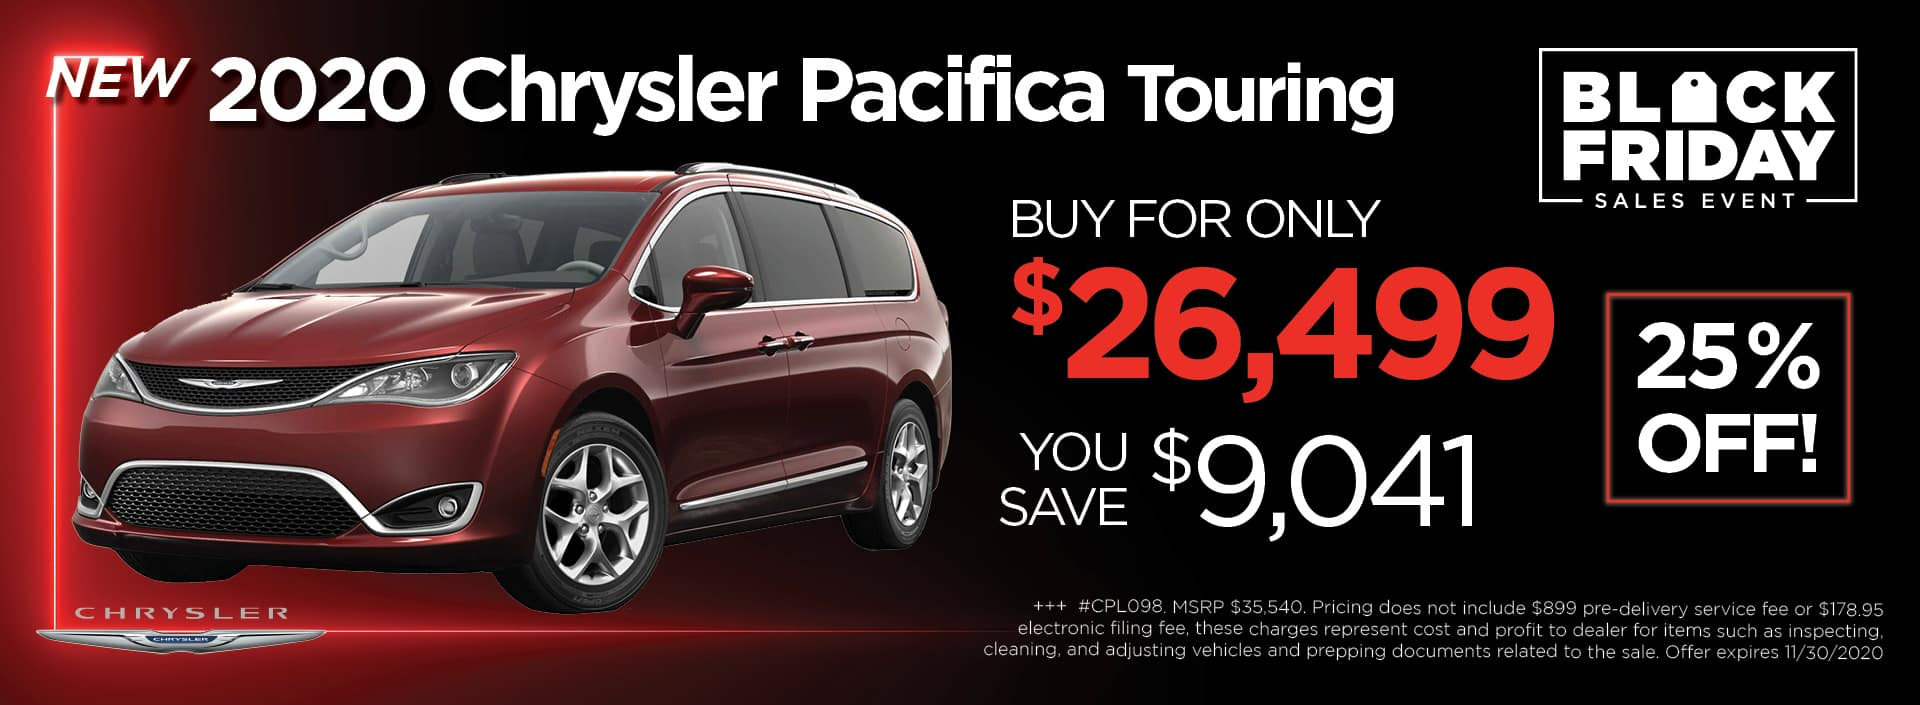 Chrysler Pacifica BlackFriday